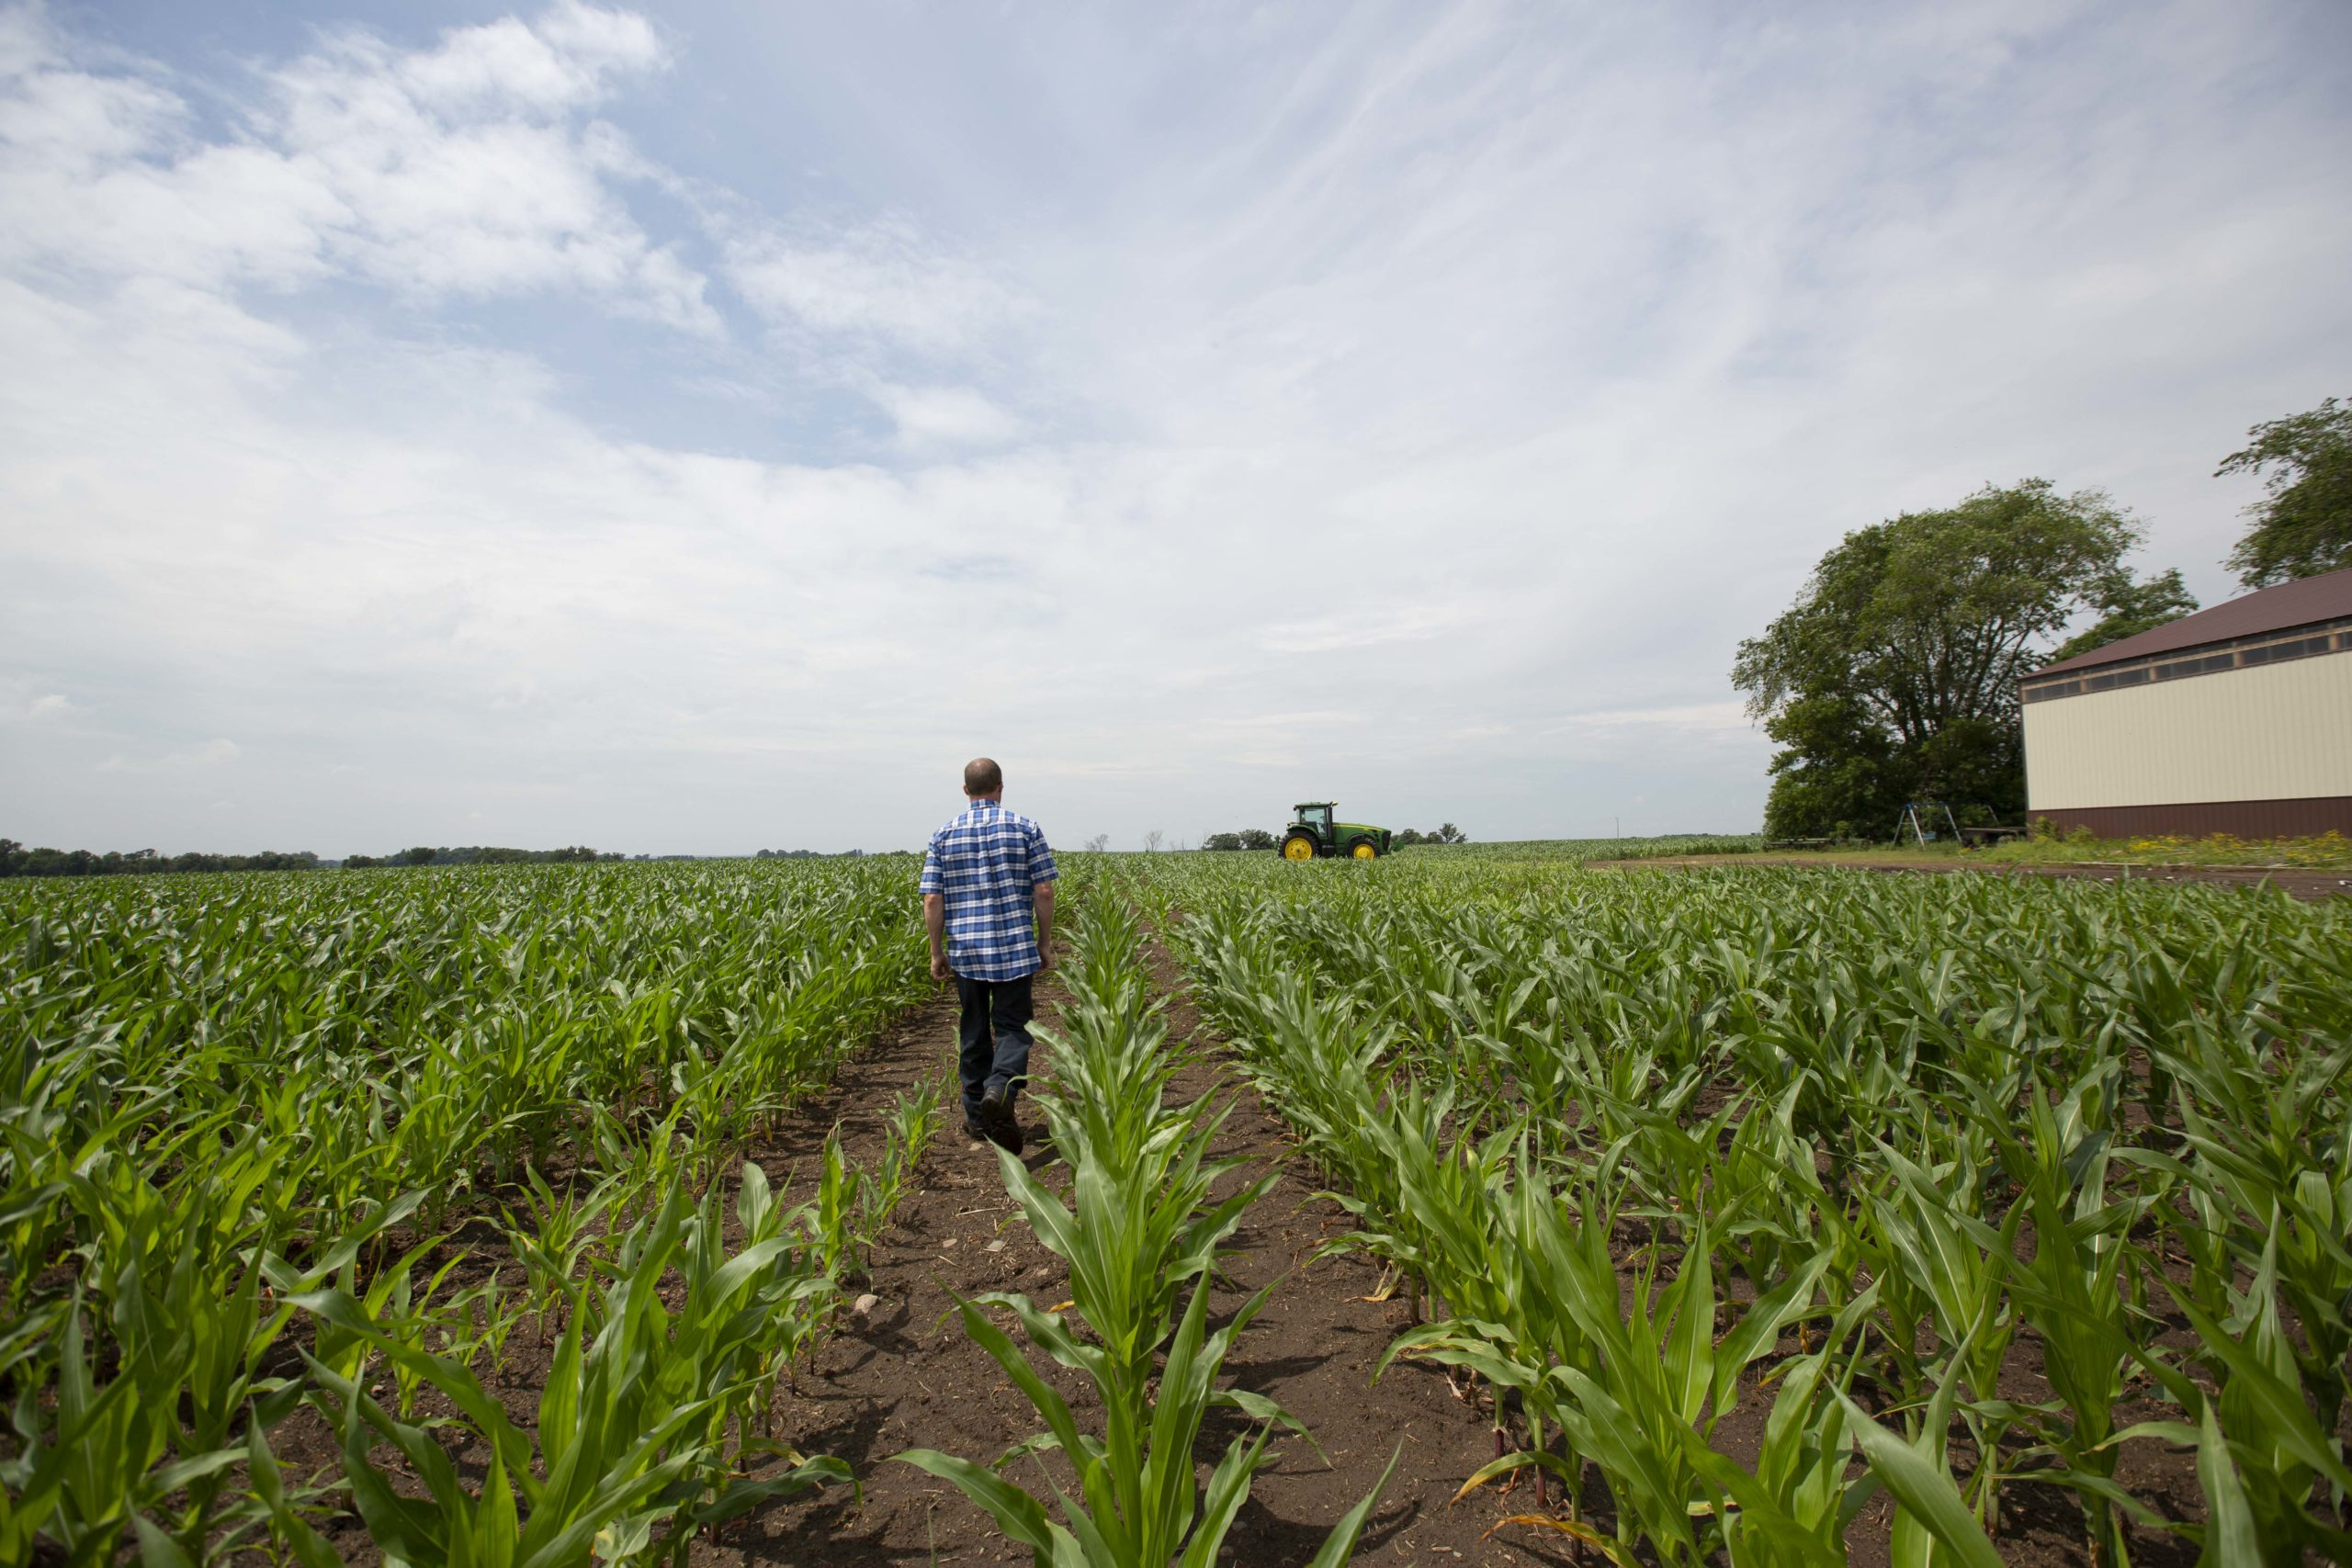 Farmer walking in corn field